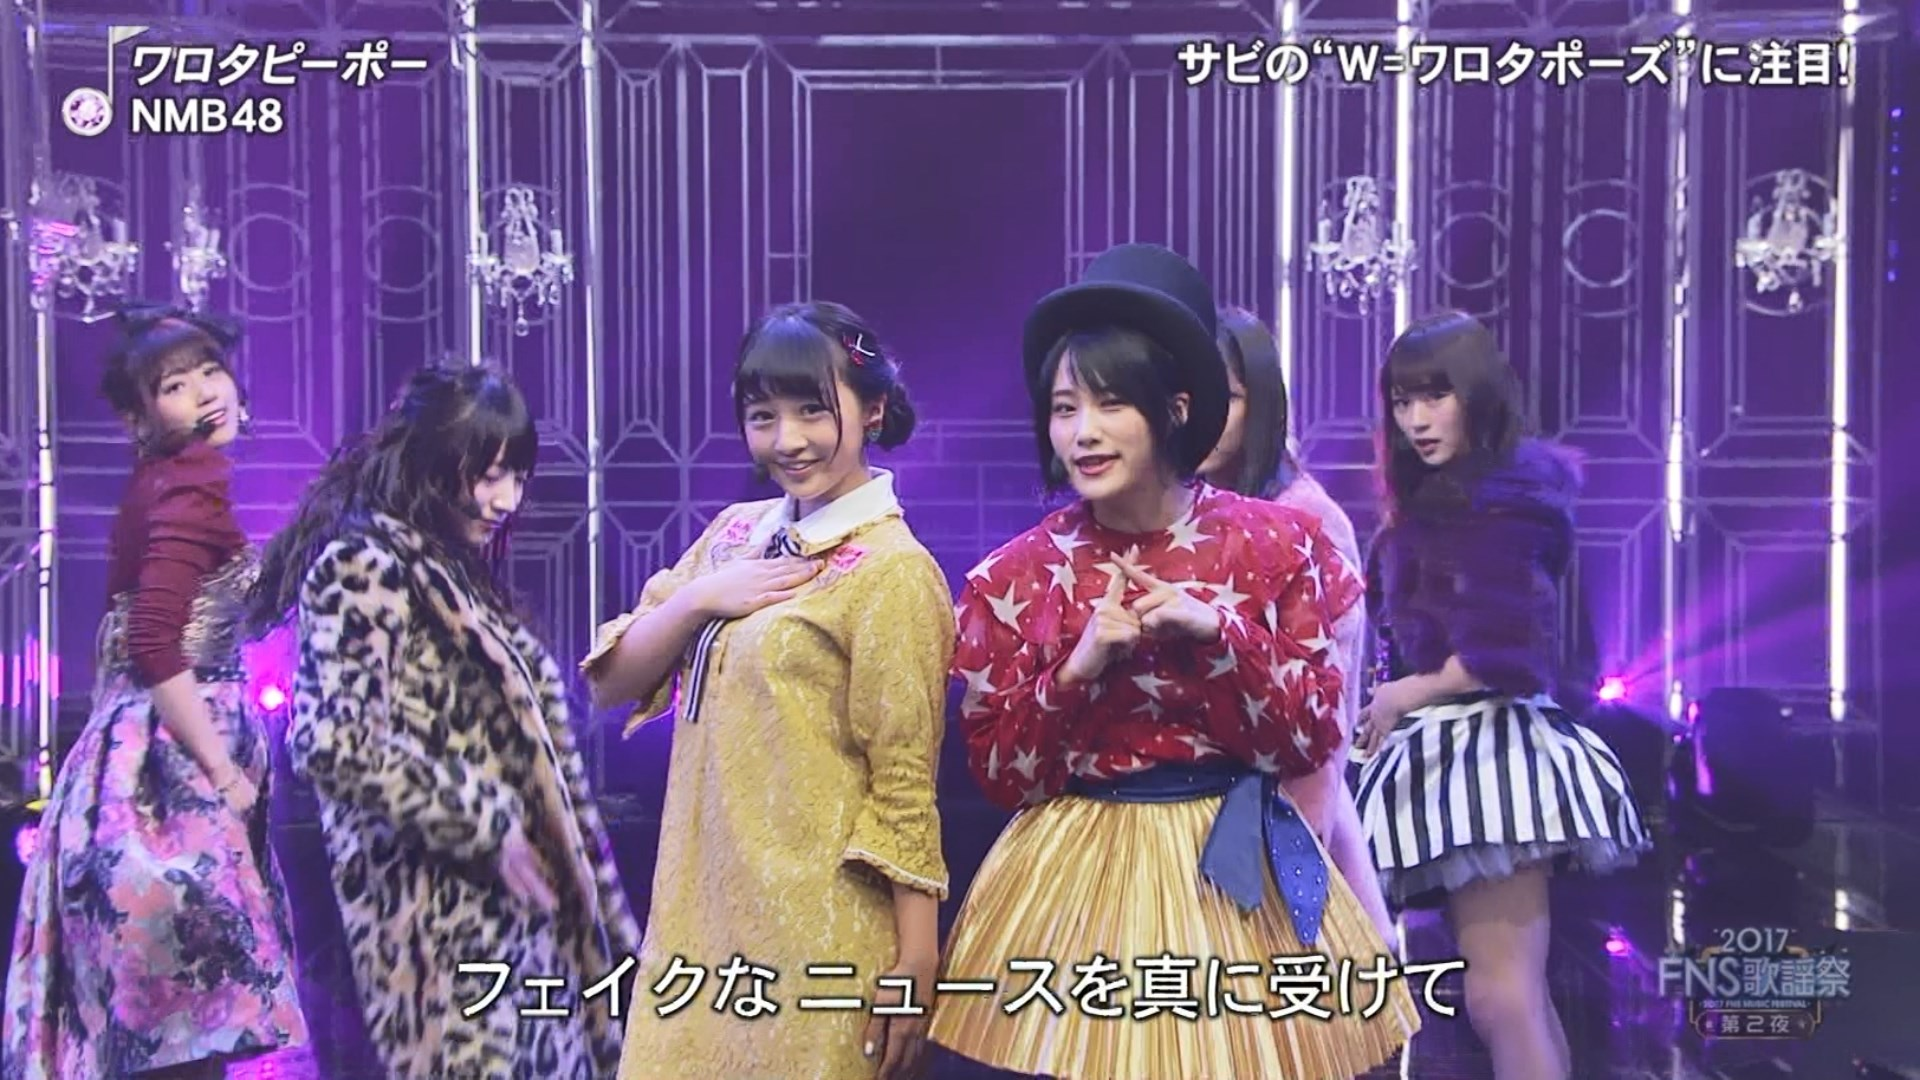 2017FNS歌謡祭第2夜・NMB48ワロタピーポーキャプ-029